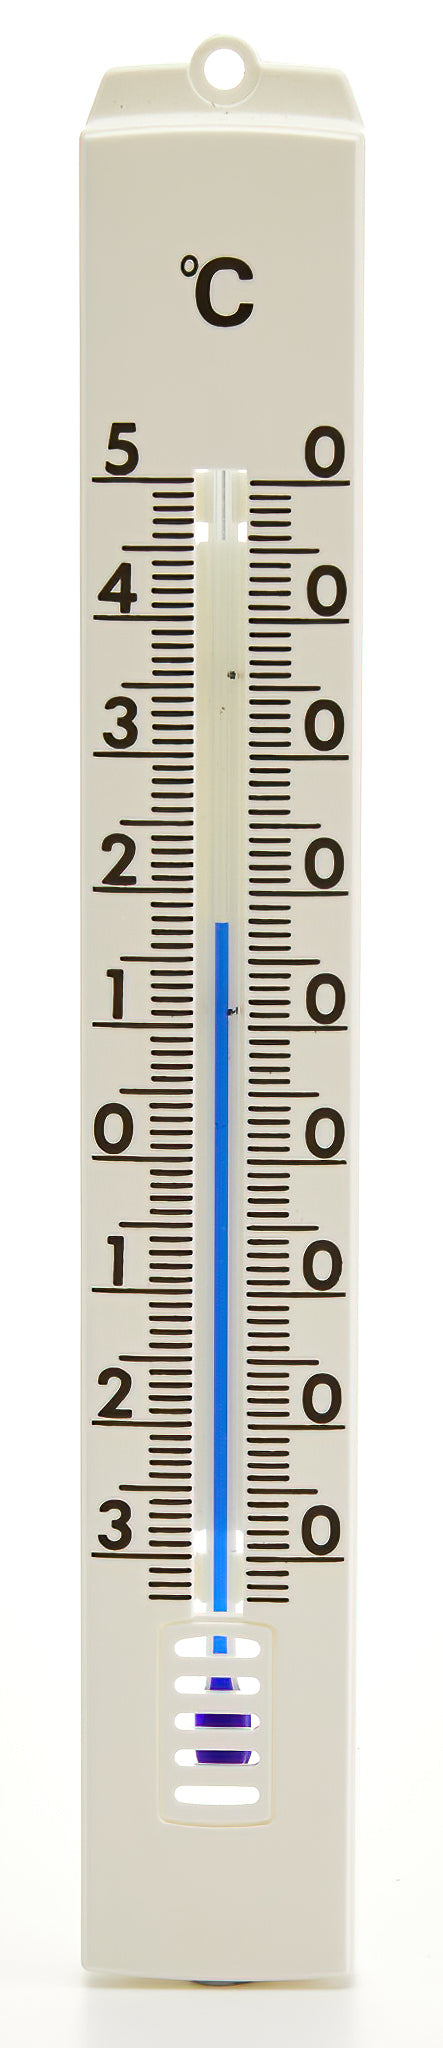 Small Plastic Room Thermometer